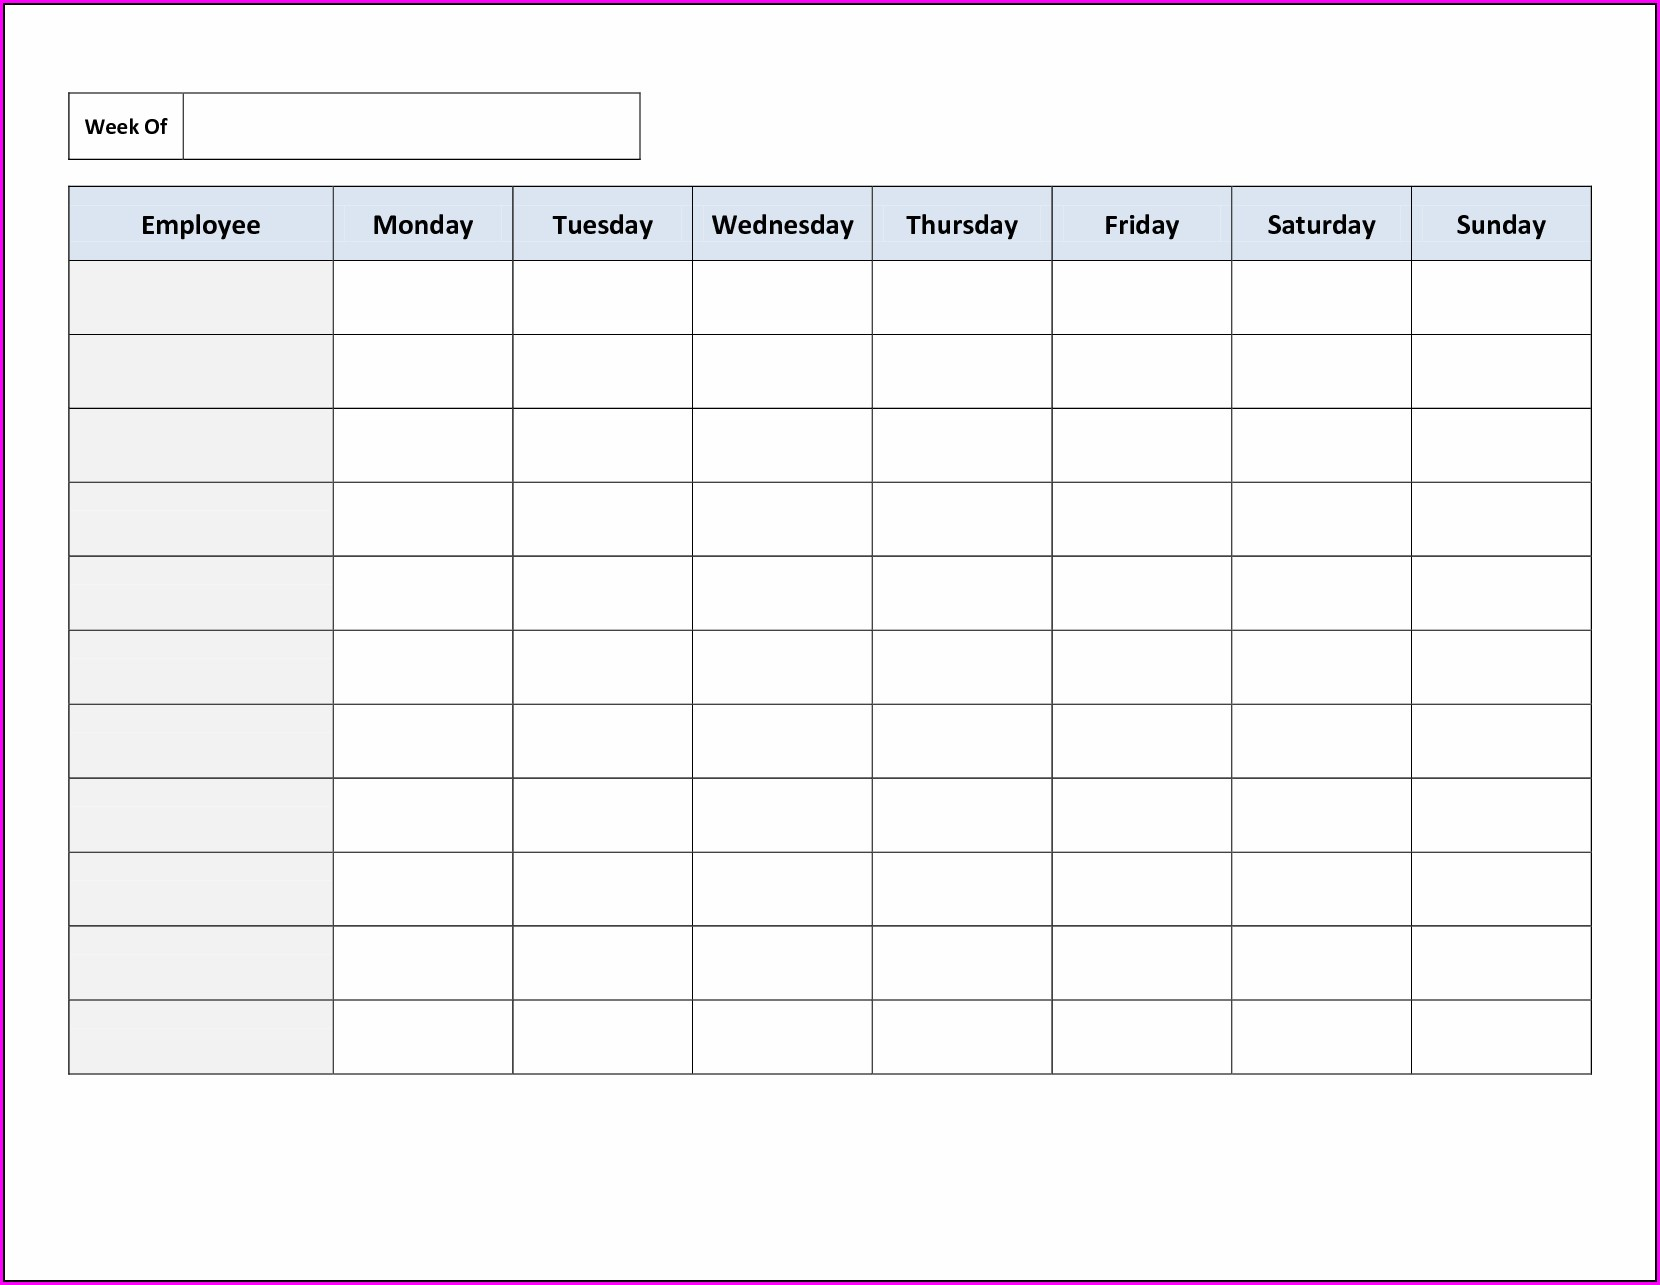 Timetable Printable Free Weekly Employee Work Schedule Template